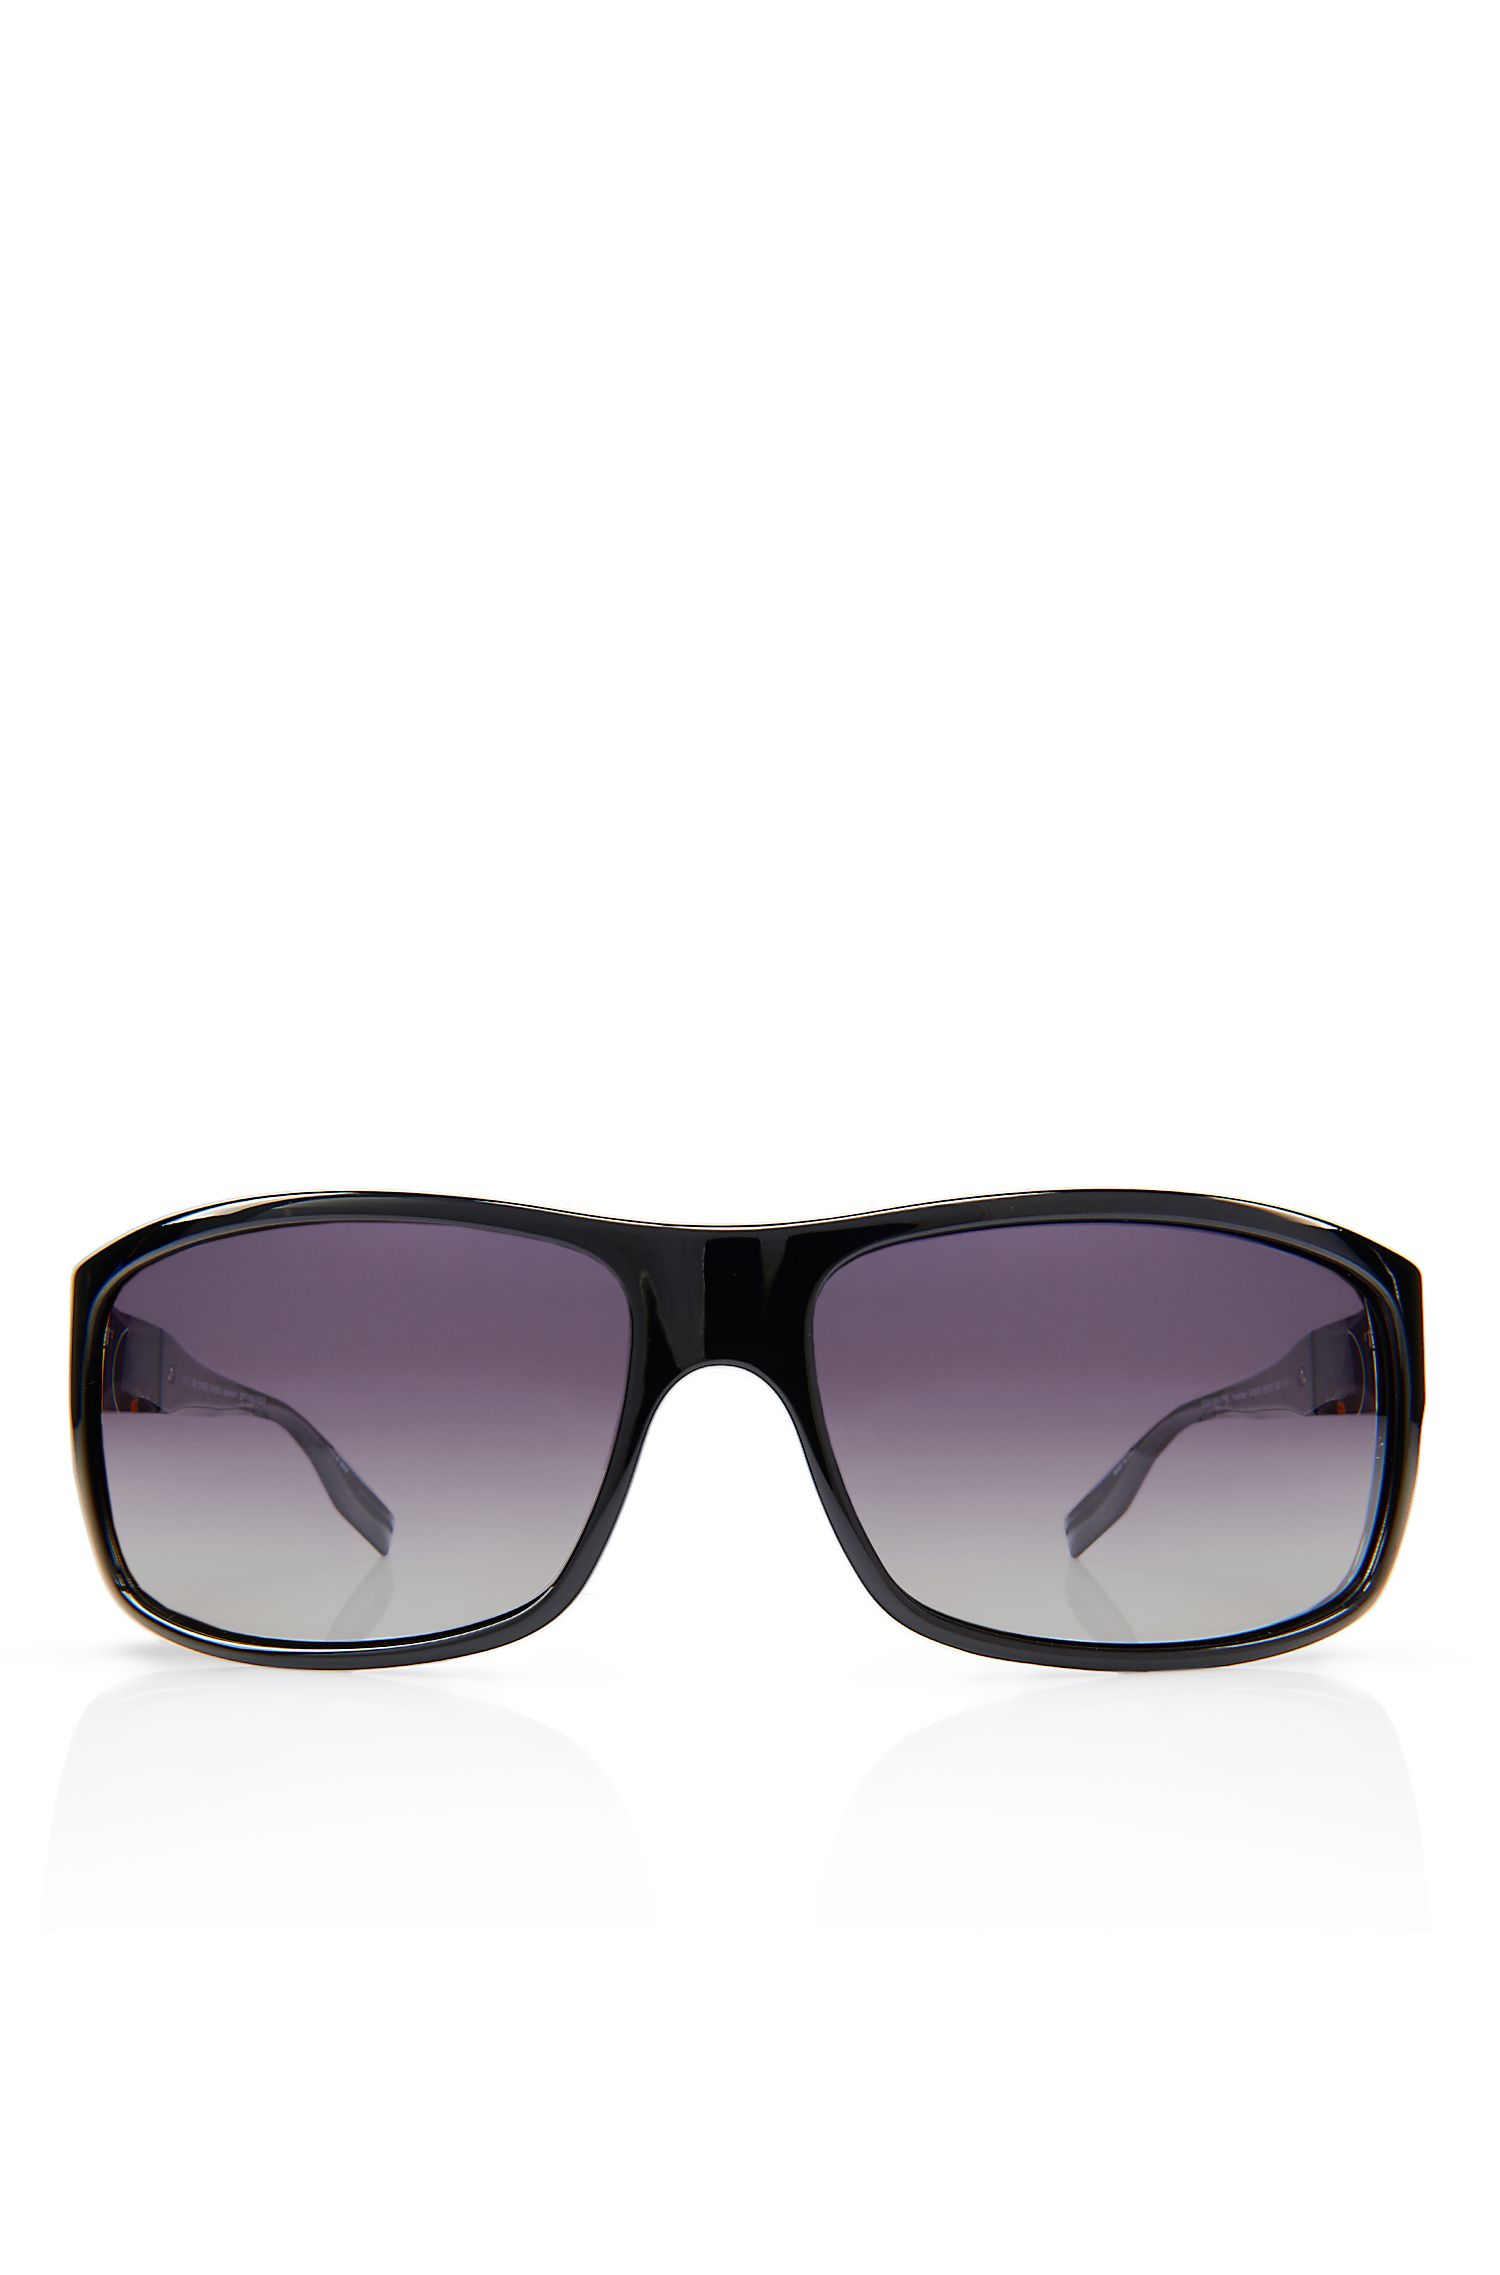 'Sunglasses' | Shiny Black Polarized Sunglasses